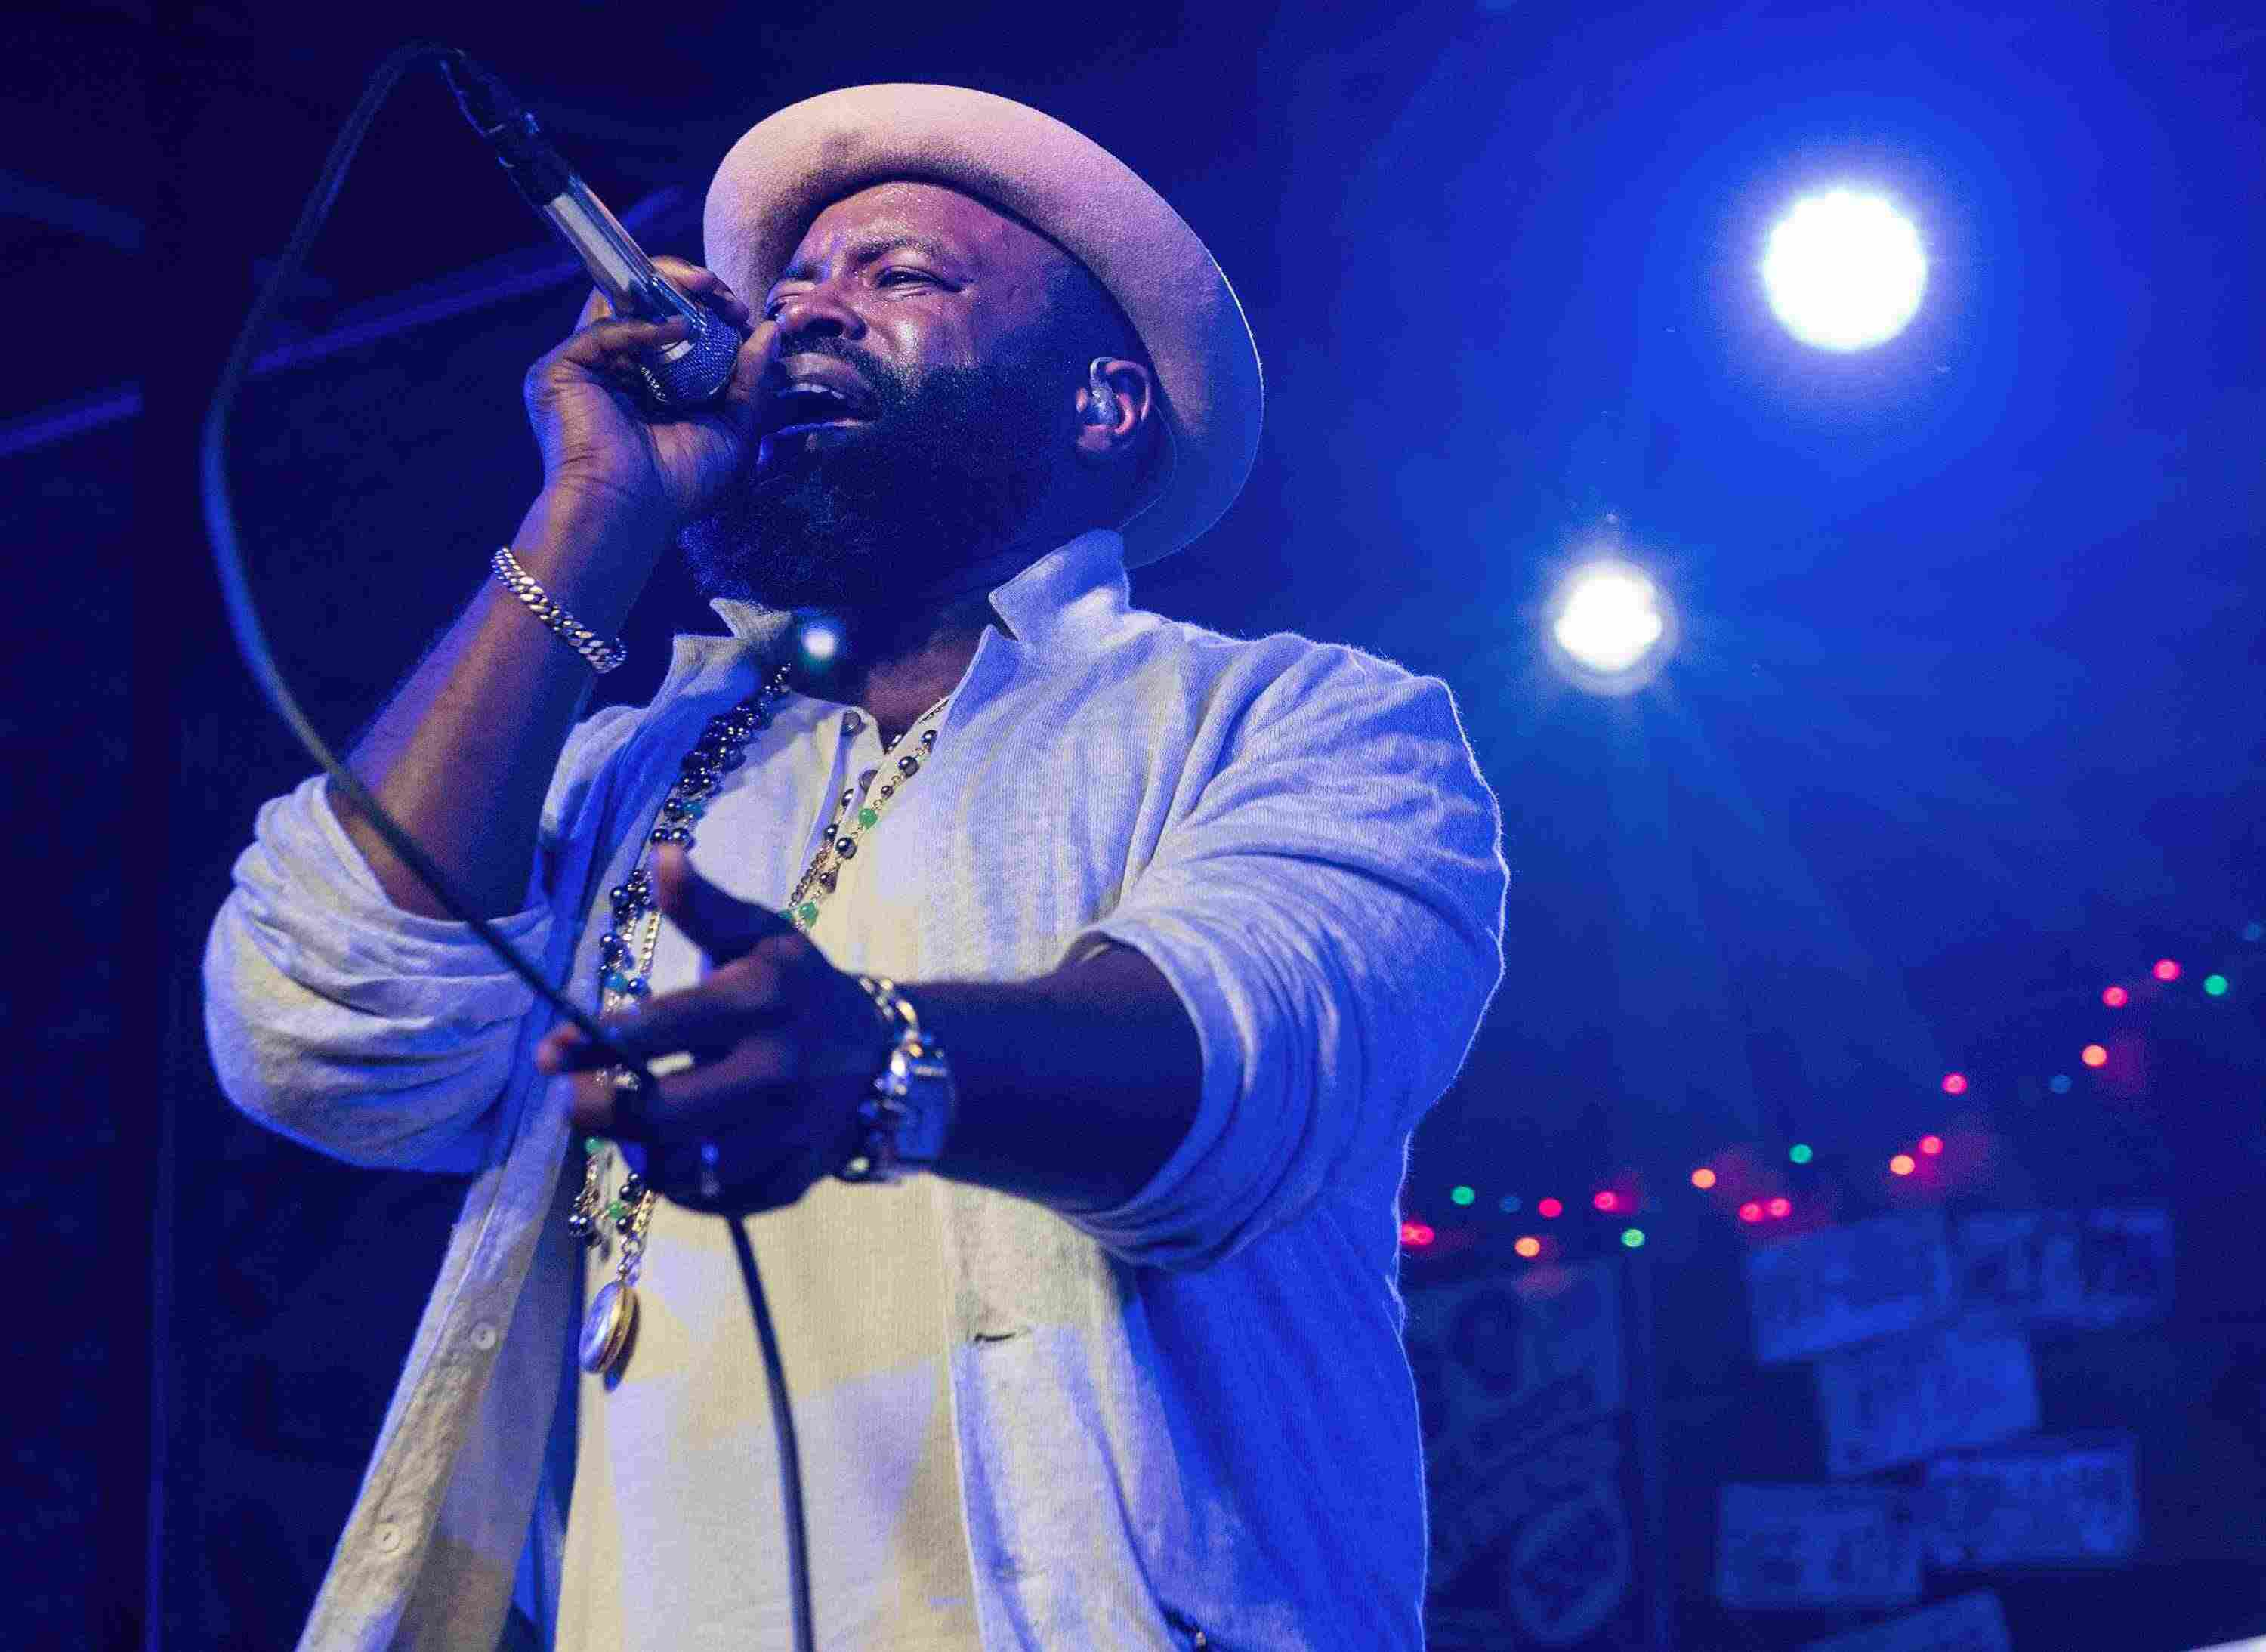 Bomb threat forces cancelation of The Roots' SXSW concert